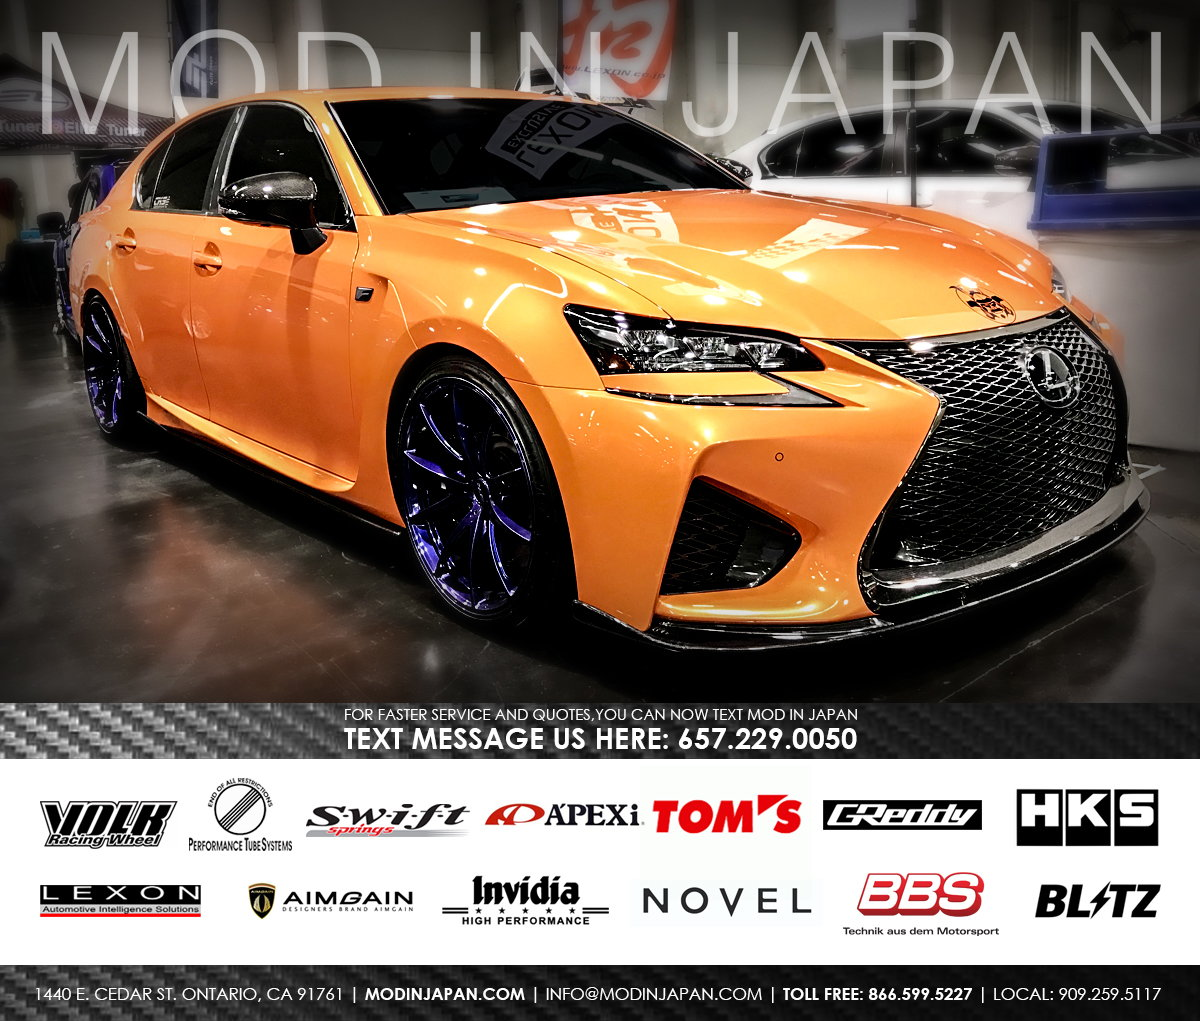 Lexus Gs For Sale: Sale End Of The Year Sales For LEXUS GS-F